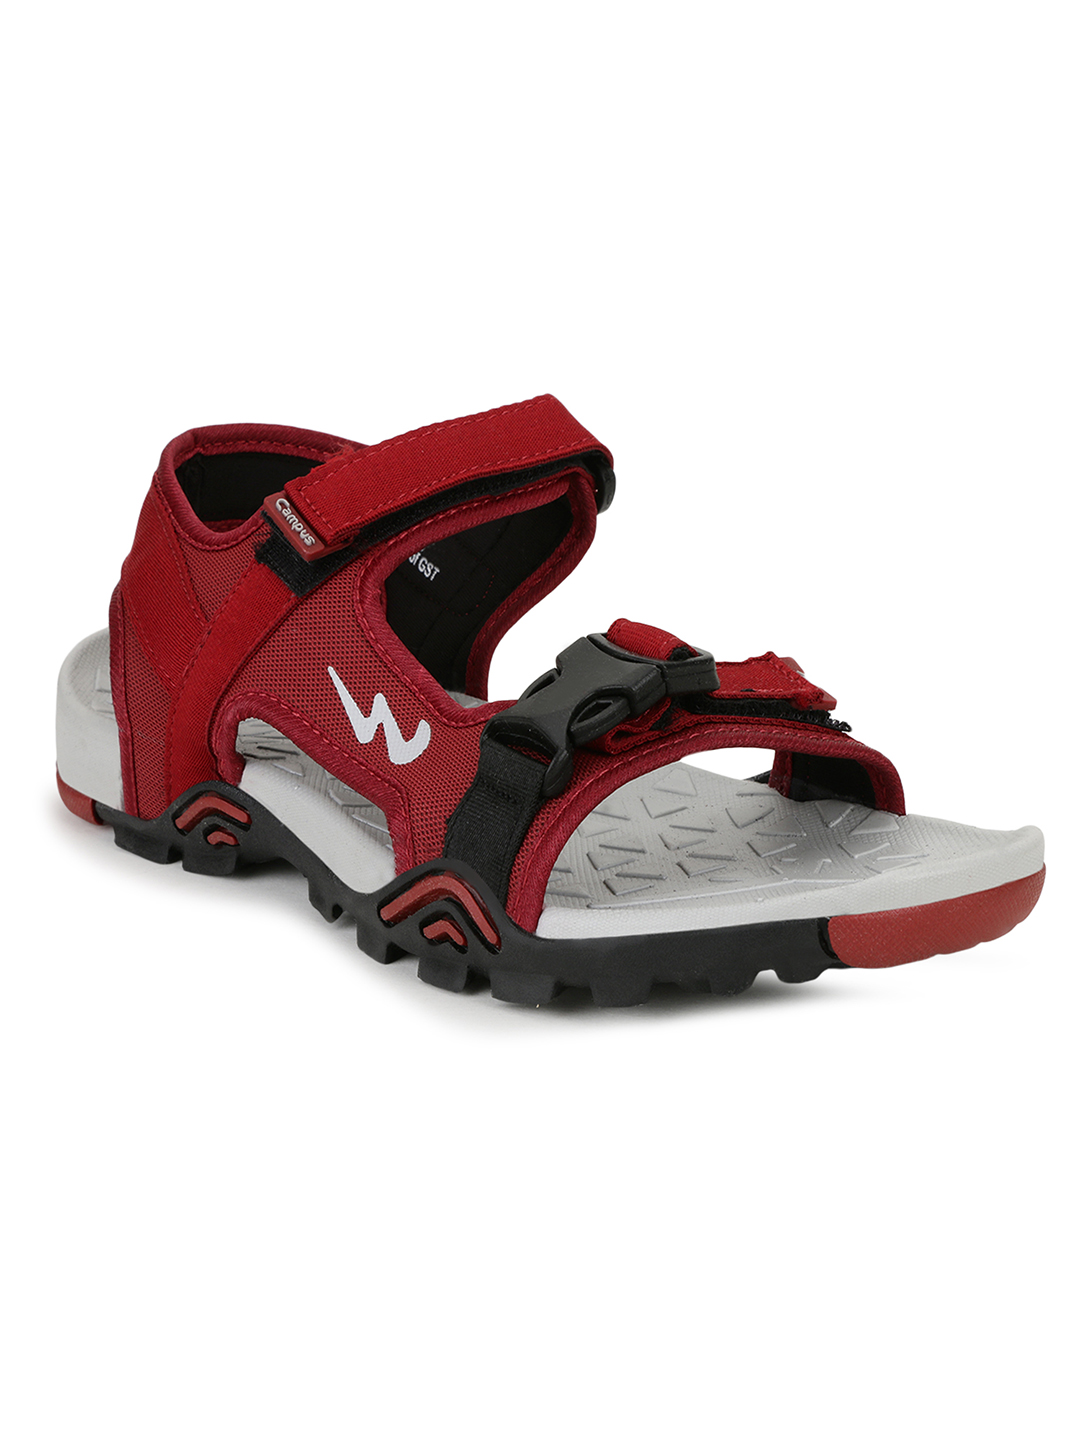 Campus Shoes   Red Sandals